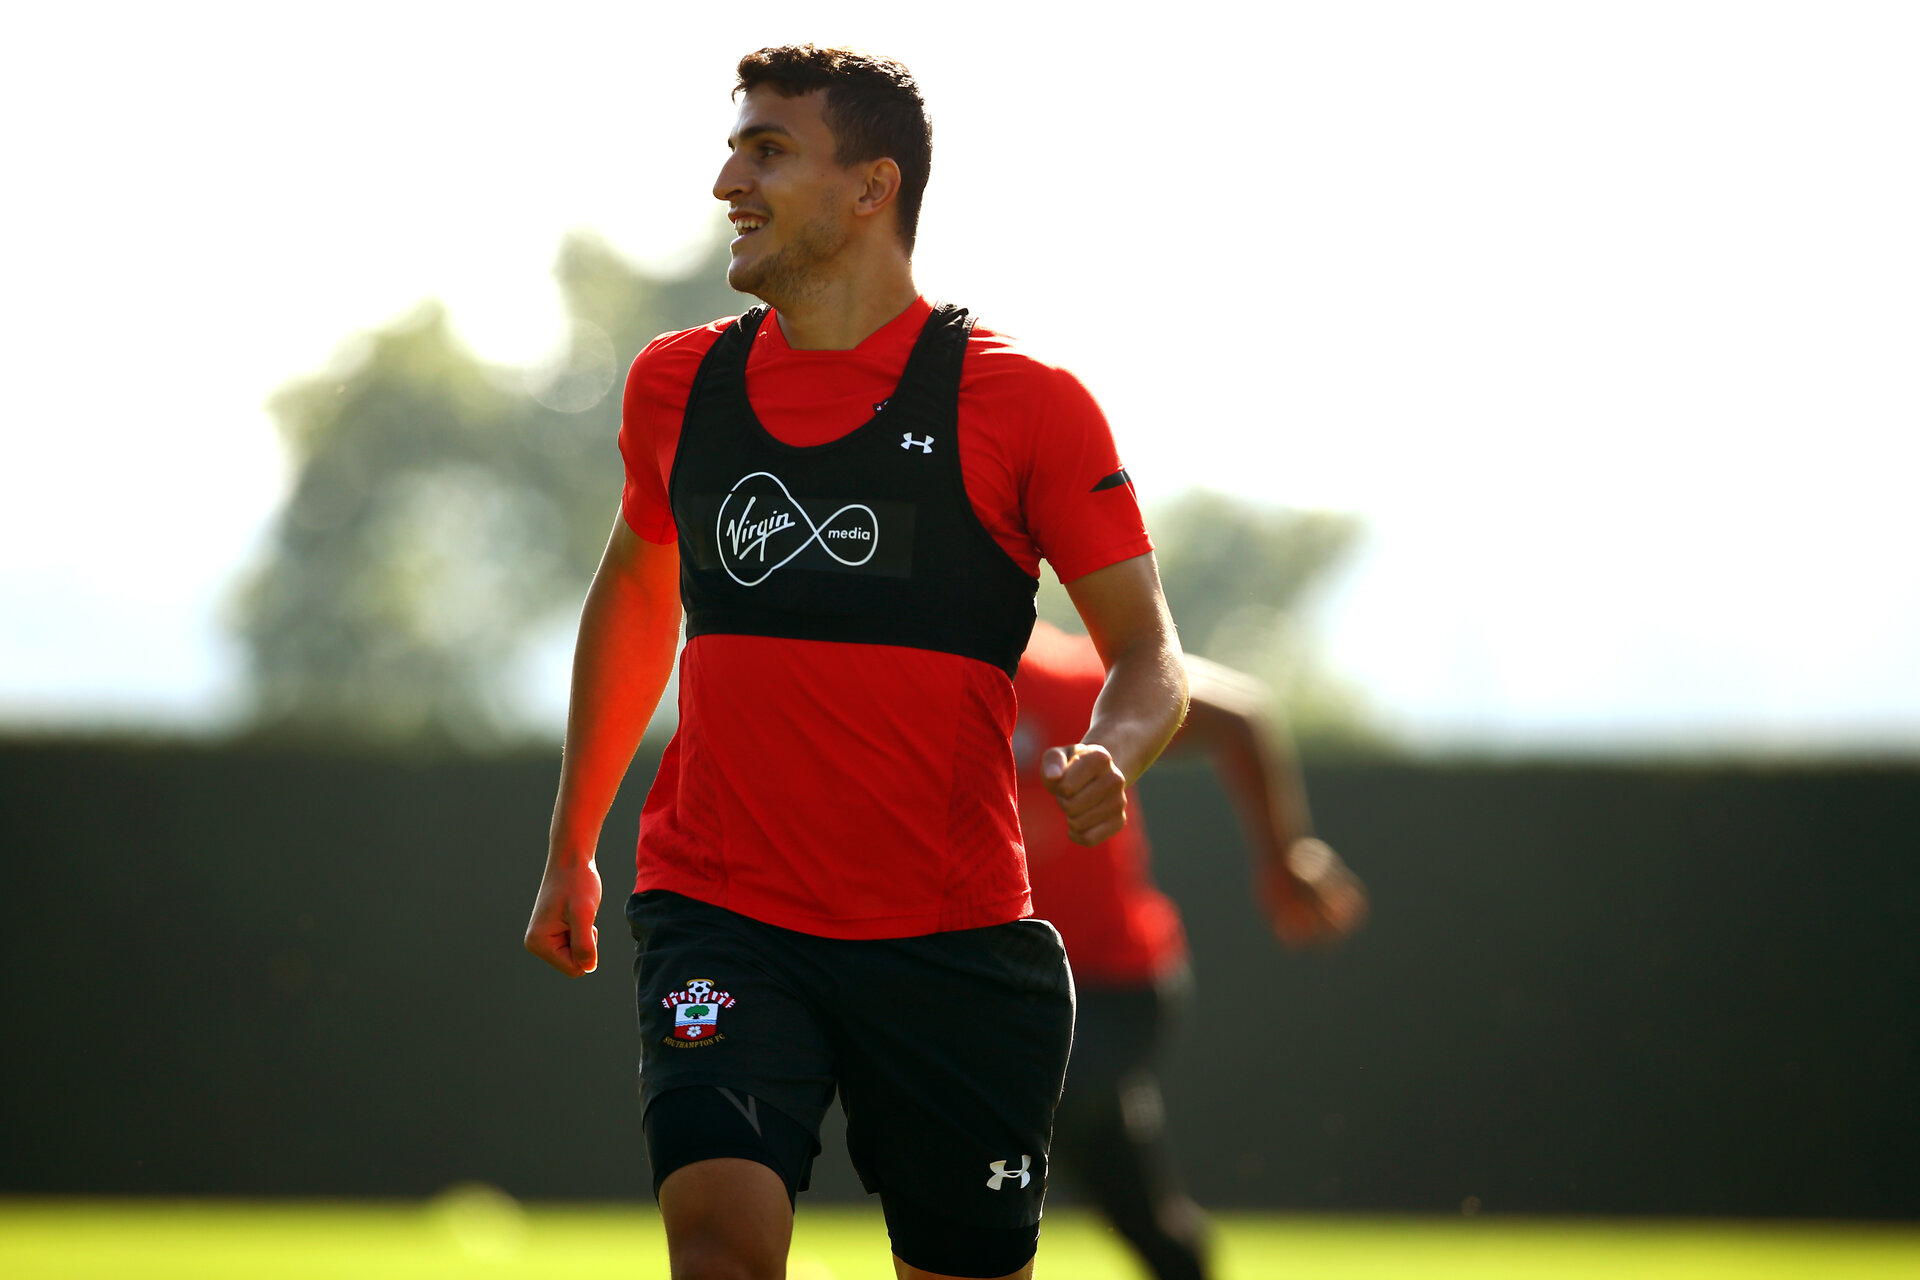 SOUTHAMPTON, ENGLAND - SEPTEMBER 27: Mohamed Elyounoussi during a Southampton FC training session at Staplewood Complex on September 27, 2018 in Southampton, England. (Photo by James Bridle - Southampton FC/Southampton FC via Getty Images)